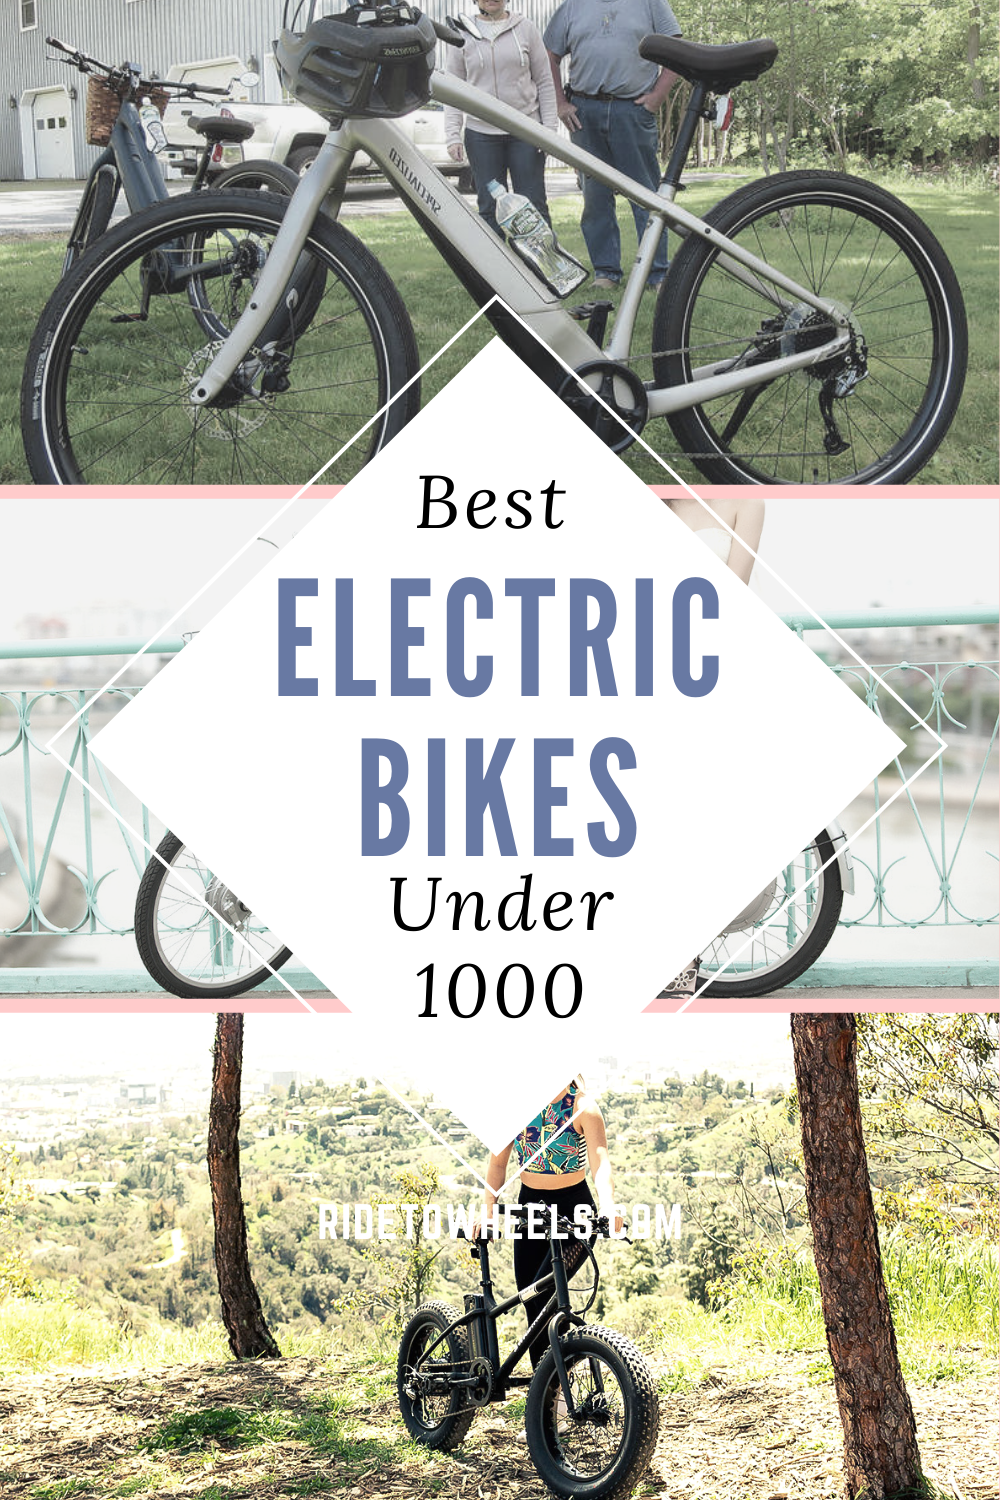 Electric Bikes Also Fetch A High Conversion Value Many People